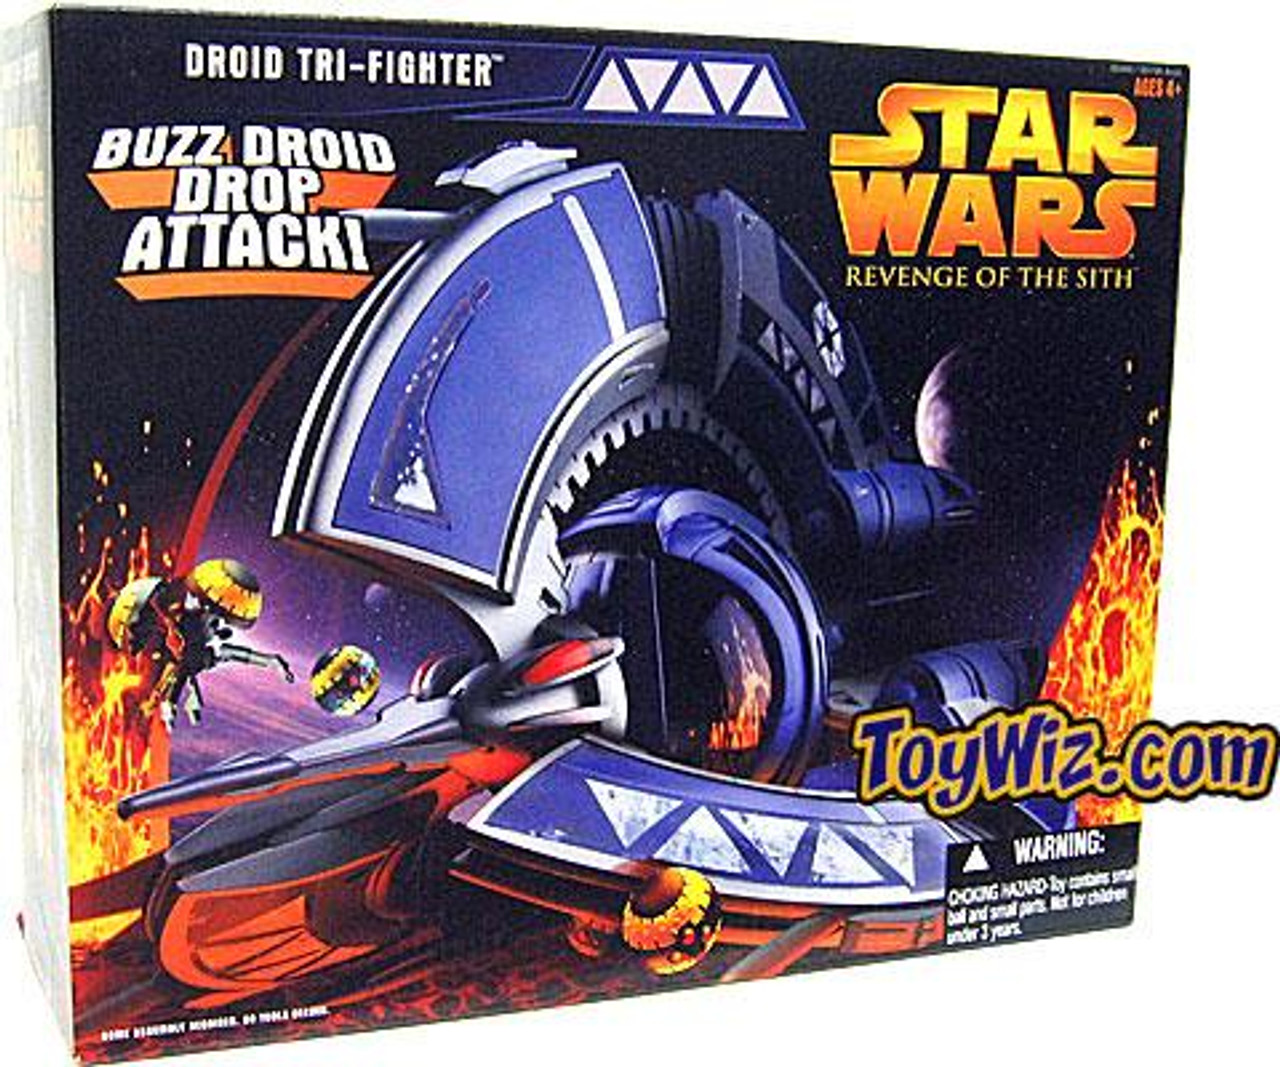 Star Wars Revenge of the Sith 2005 Droid Tri-Fighter Action Figure